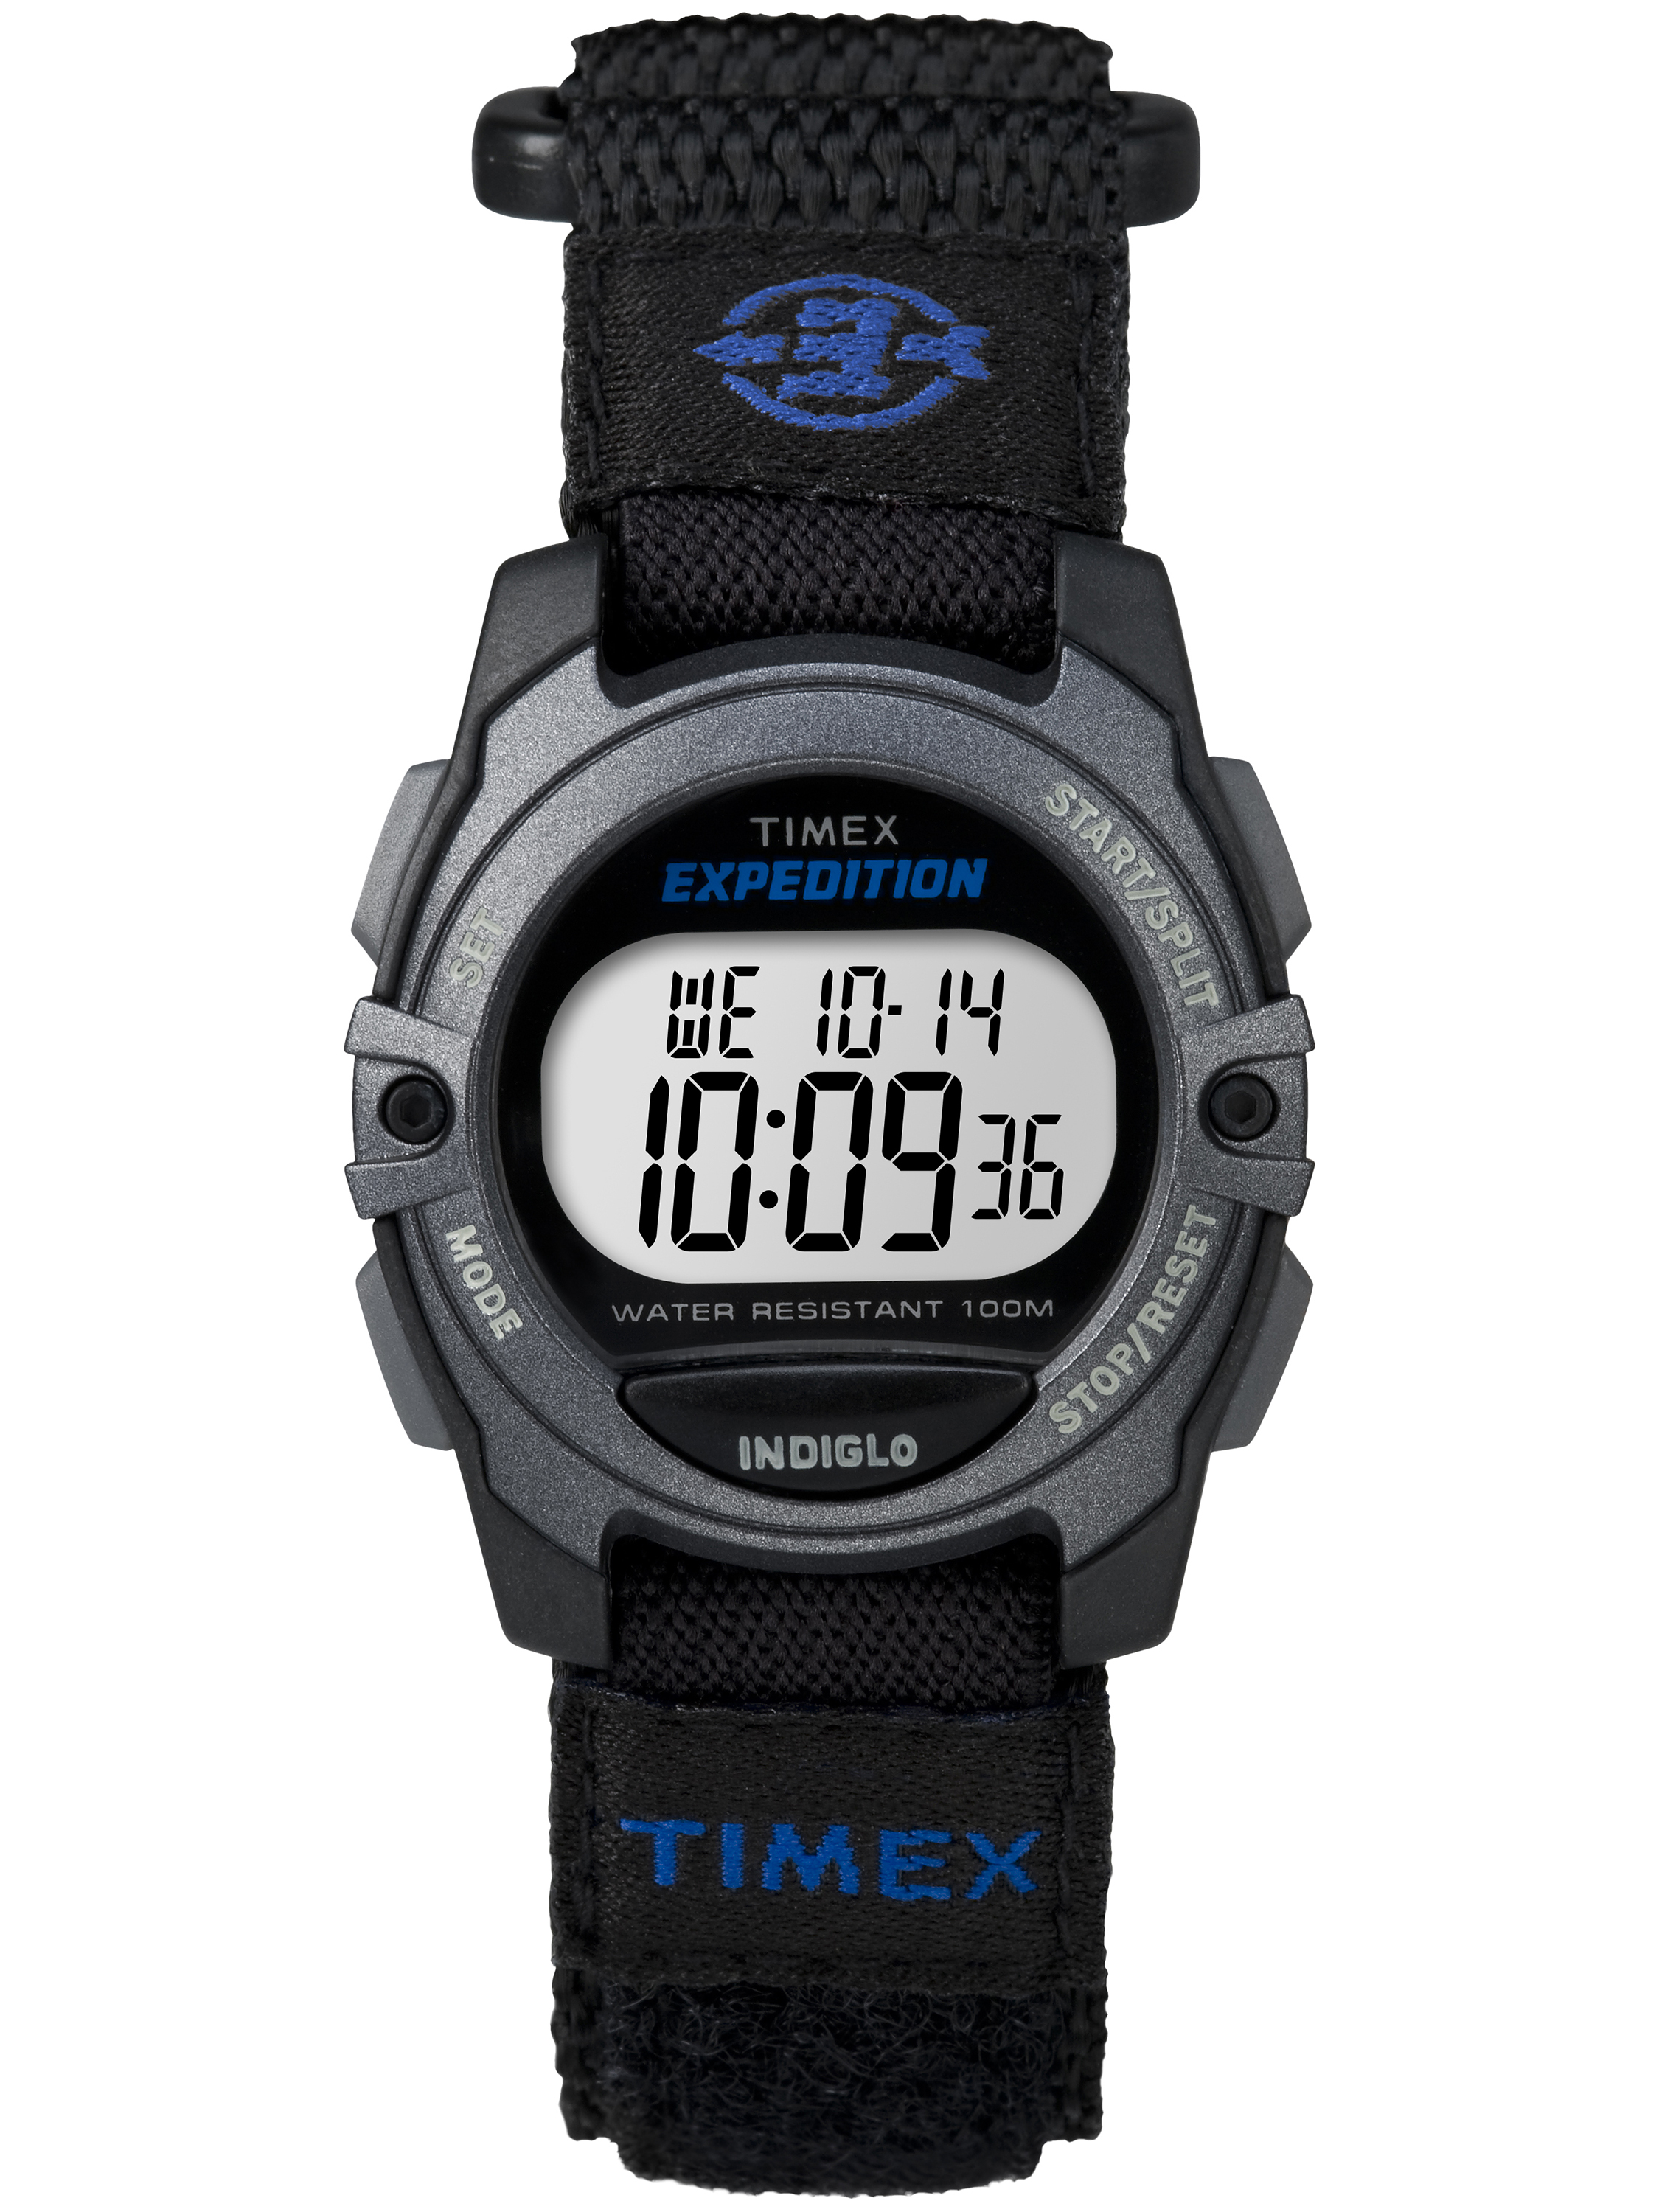 Unisex Expedition Digital CAT Mid-Size Watch, Black Fast Wrap Velcro Strap